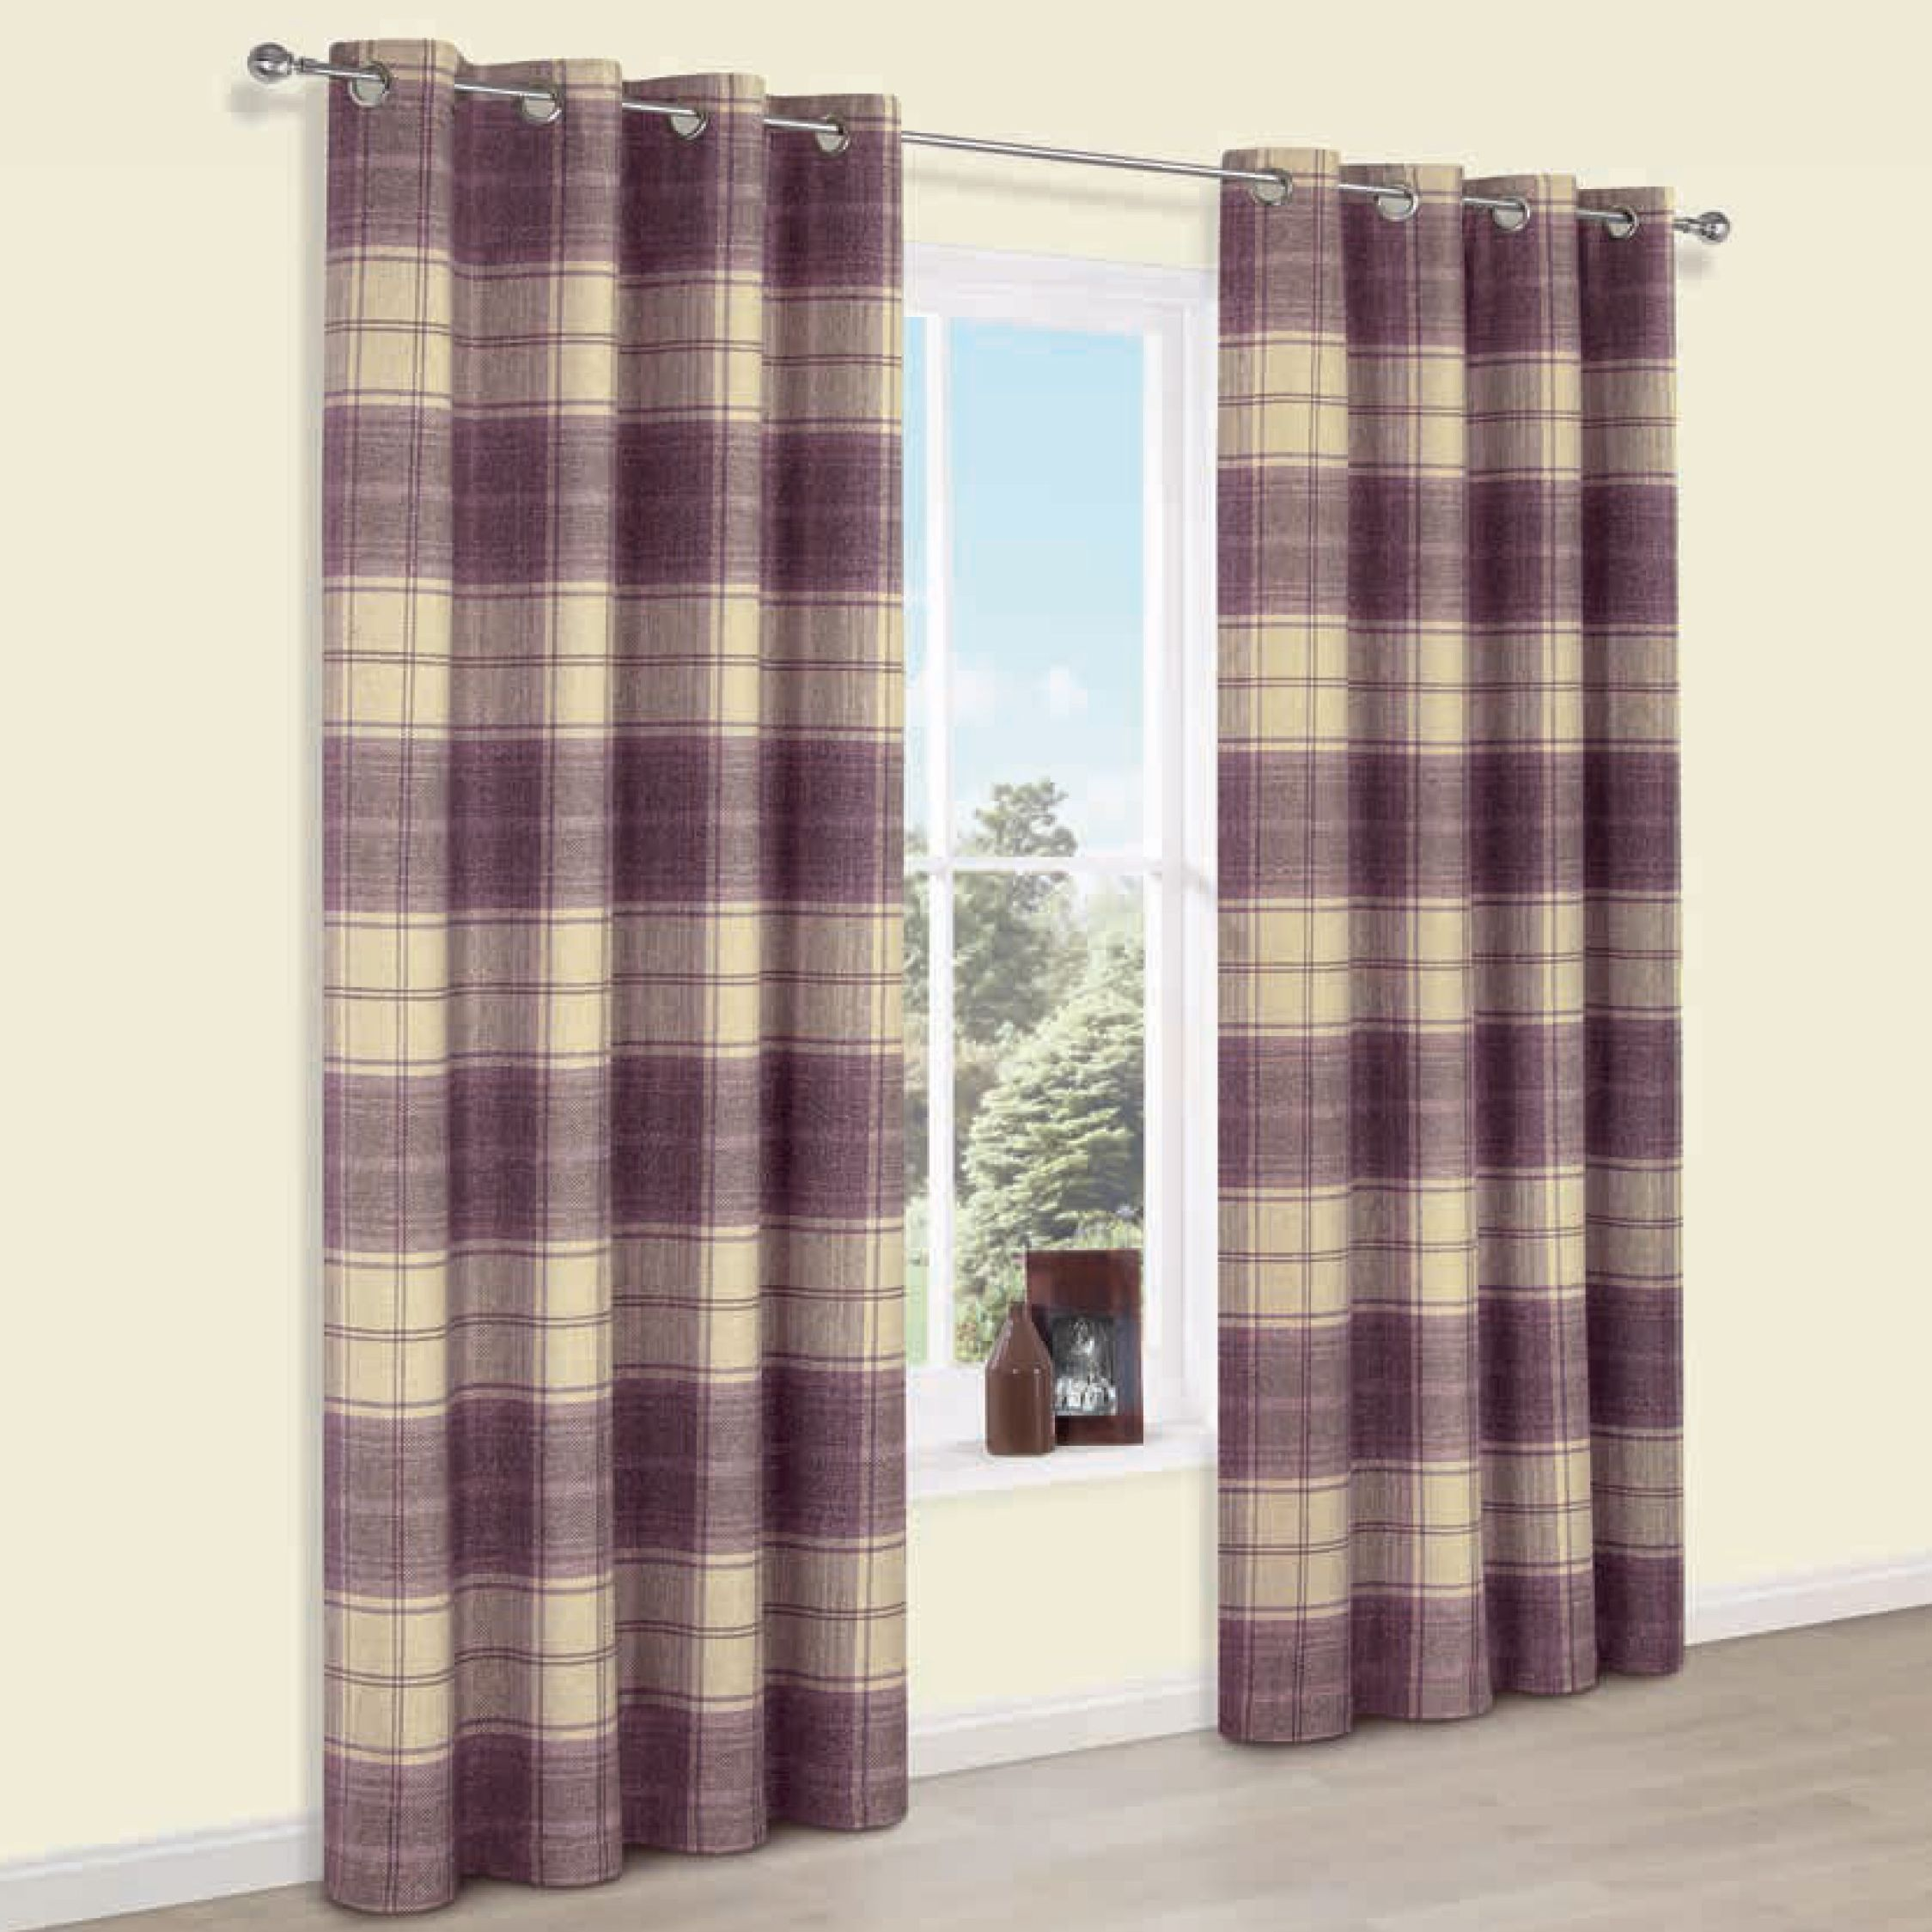 bedroom pink curtains ideas for rooms brown sheer sale cute panels purple white and linen lavender curtain silver various